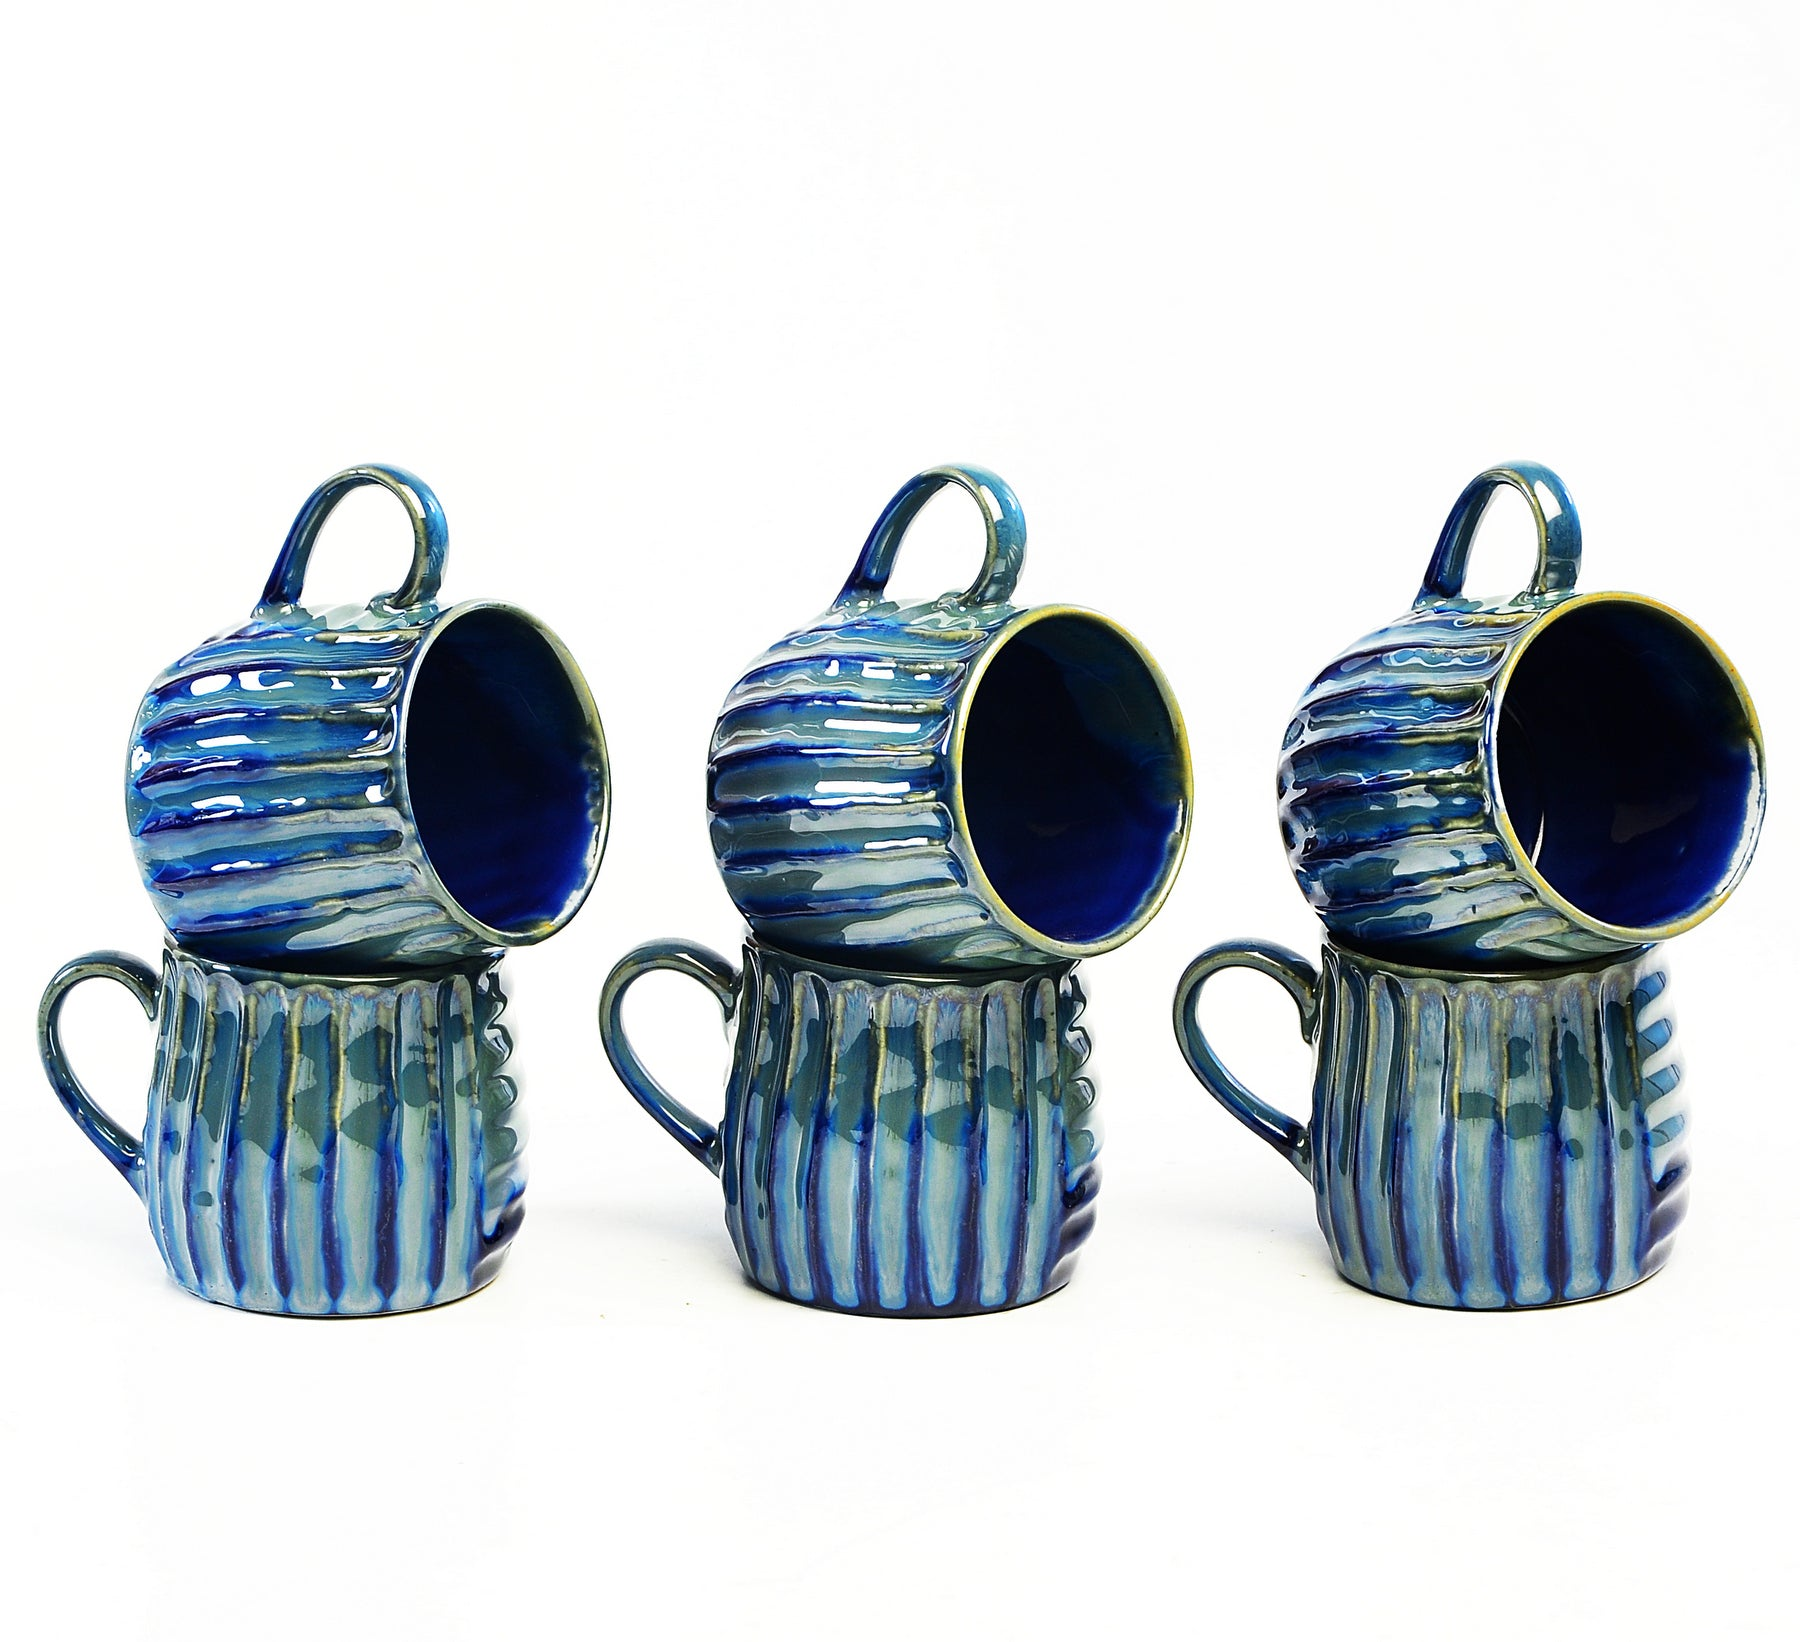 costela-blue-coffee-mugs-dec5525